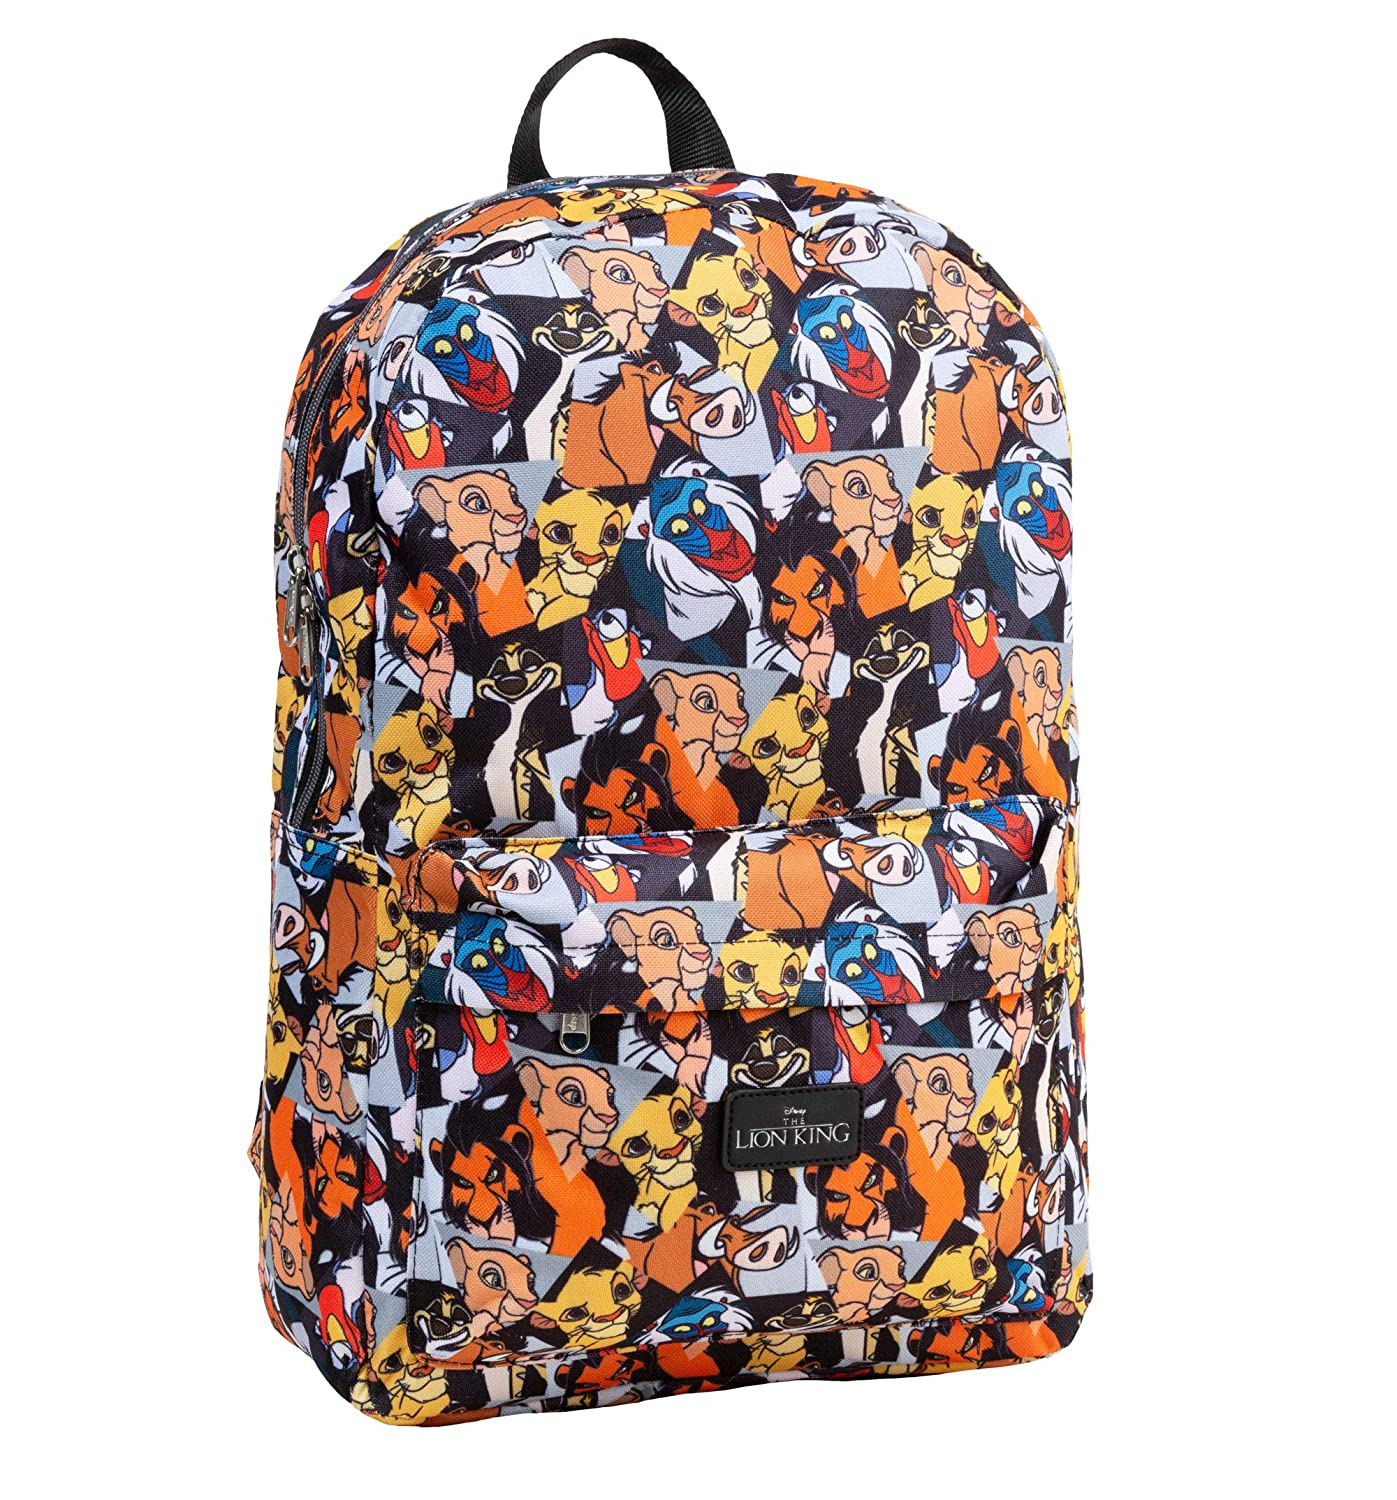 All Over Print Disney Lion King Backpack from Difuzed